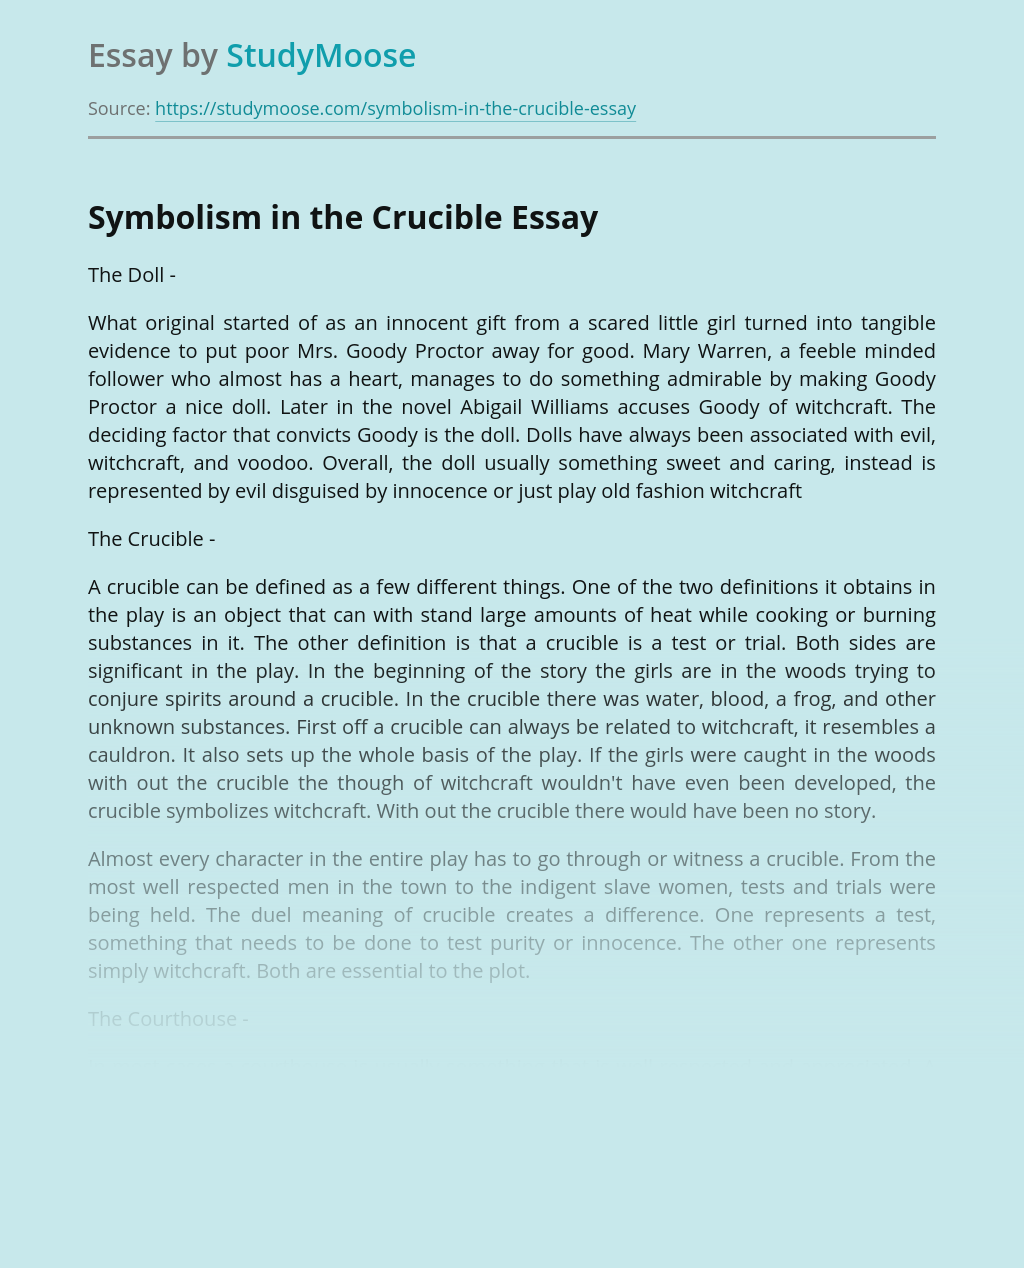 Symbolism in the Crucible